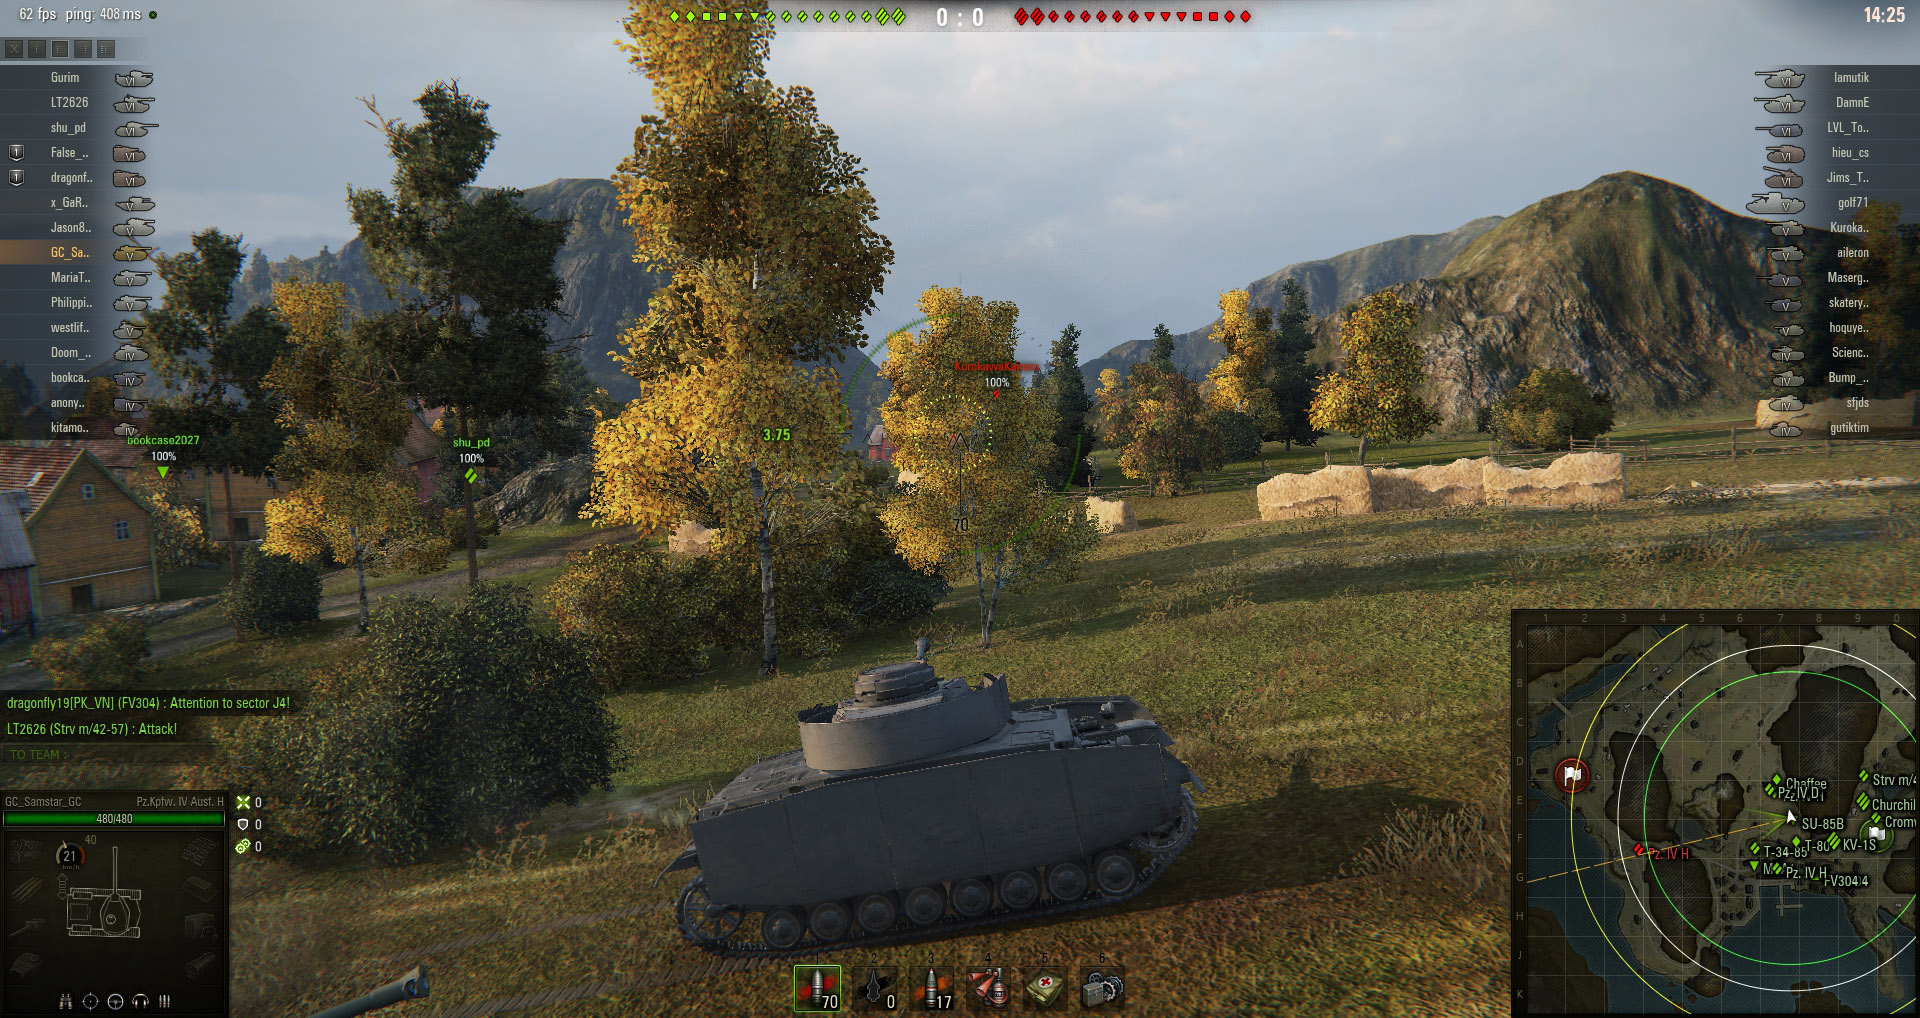 Get into position quickly to take advantage of the Panzer IV's excellent accuracy across long ranges.